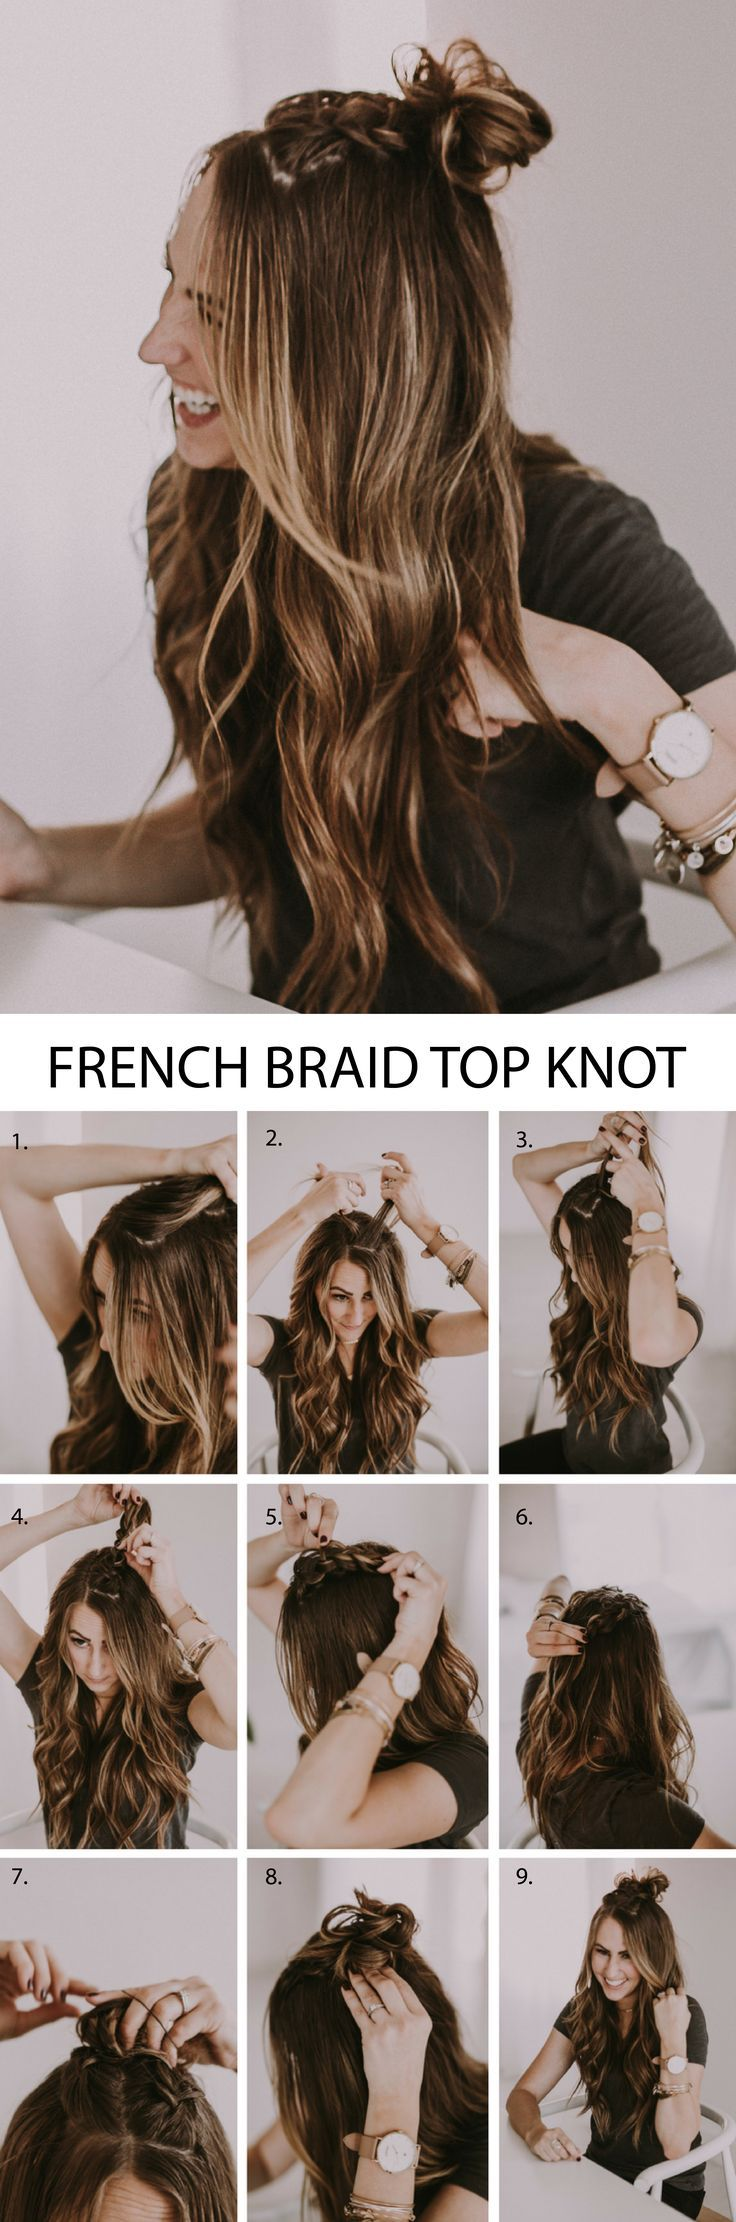 Double French Braid Half Up Top Knot. Such a beautiful hairstyle with braids and the perfect top knot. I love the step by step and the video tutorial!